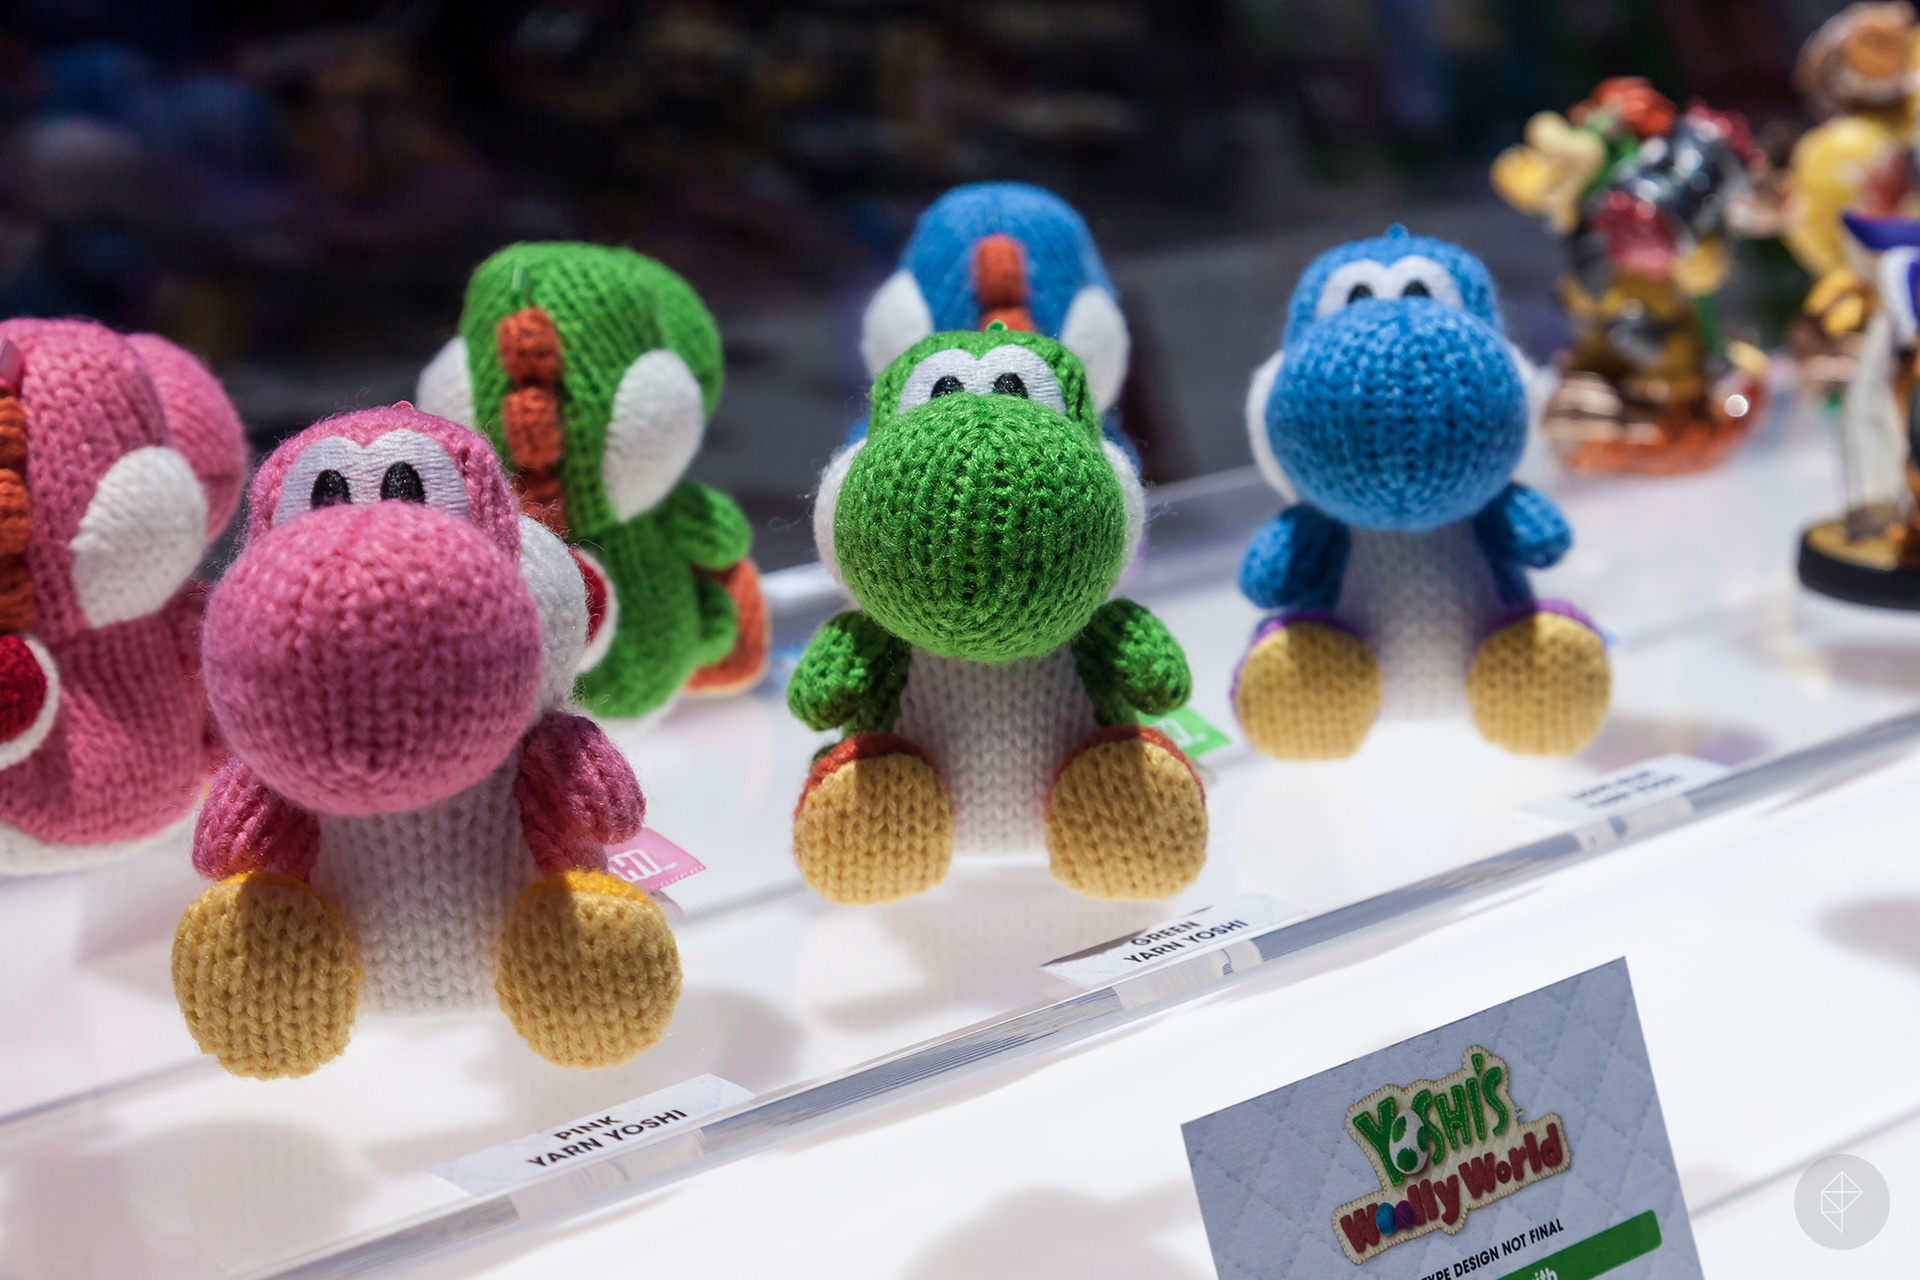 Mega Yarn Yoshi is only at Toys R Us (updated)